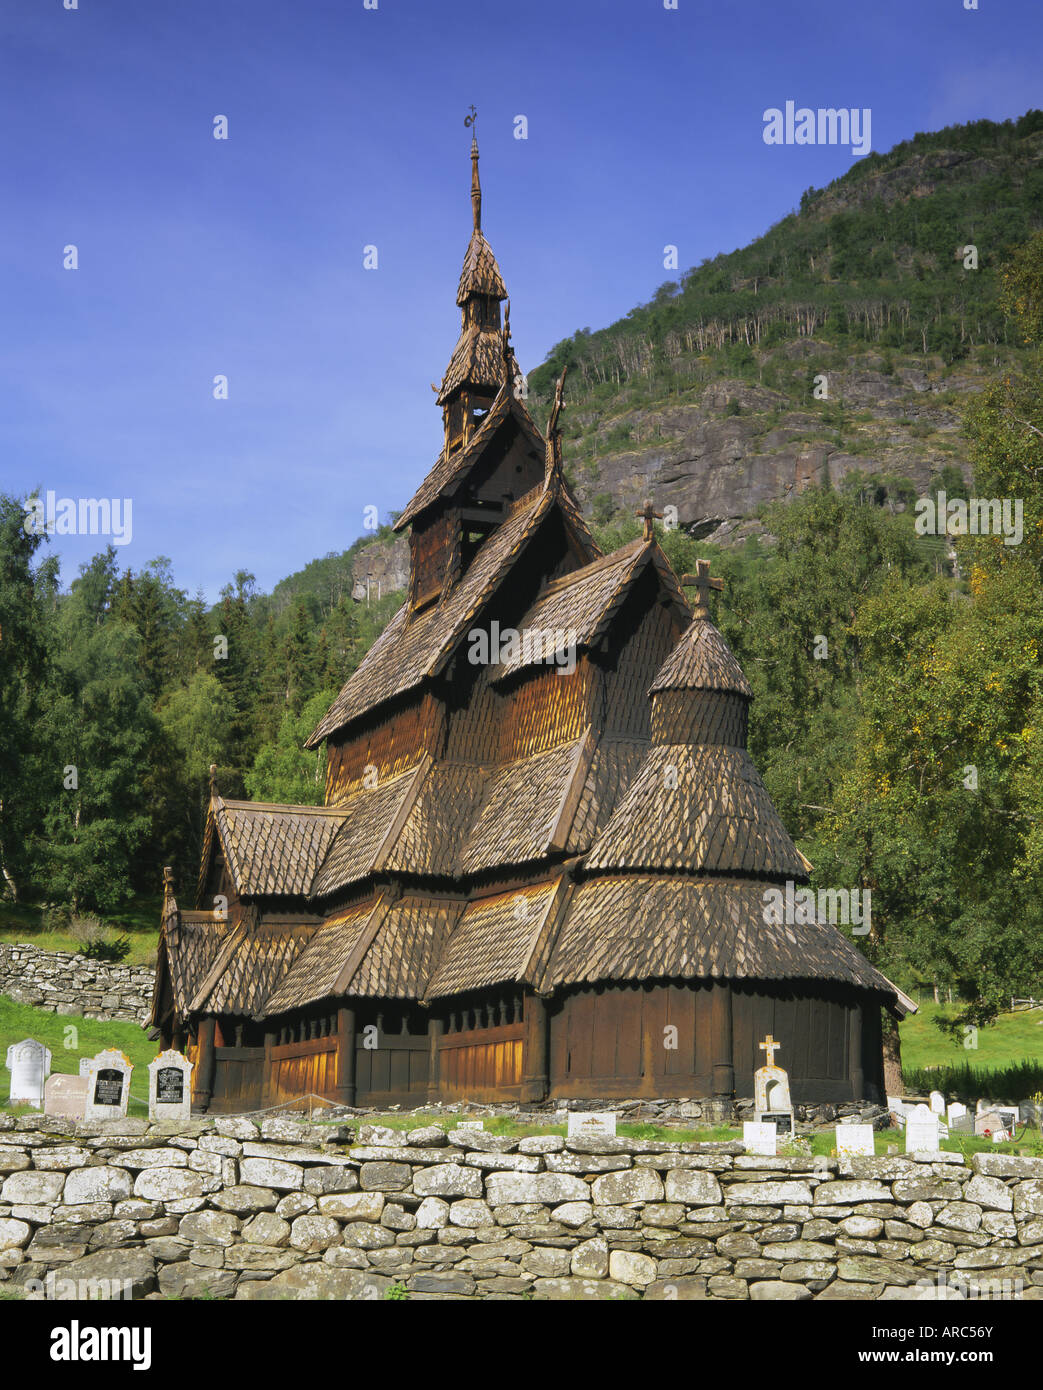 Borgund Stave Church, the best preserved 12th century stave church in the country, Borgund, Western Fjords, Norway, - Stock Image